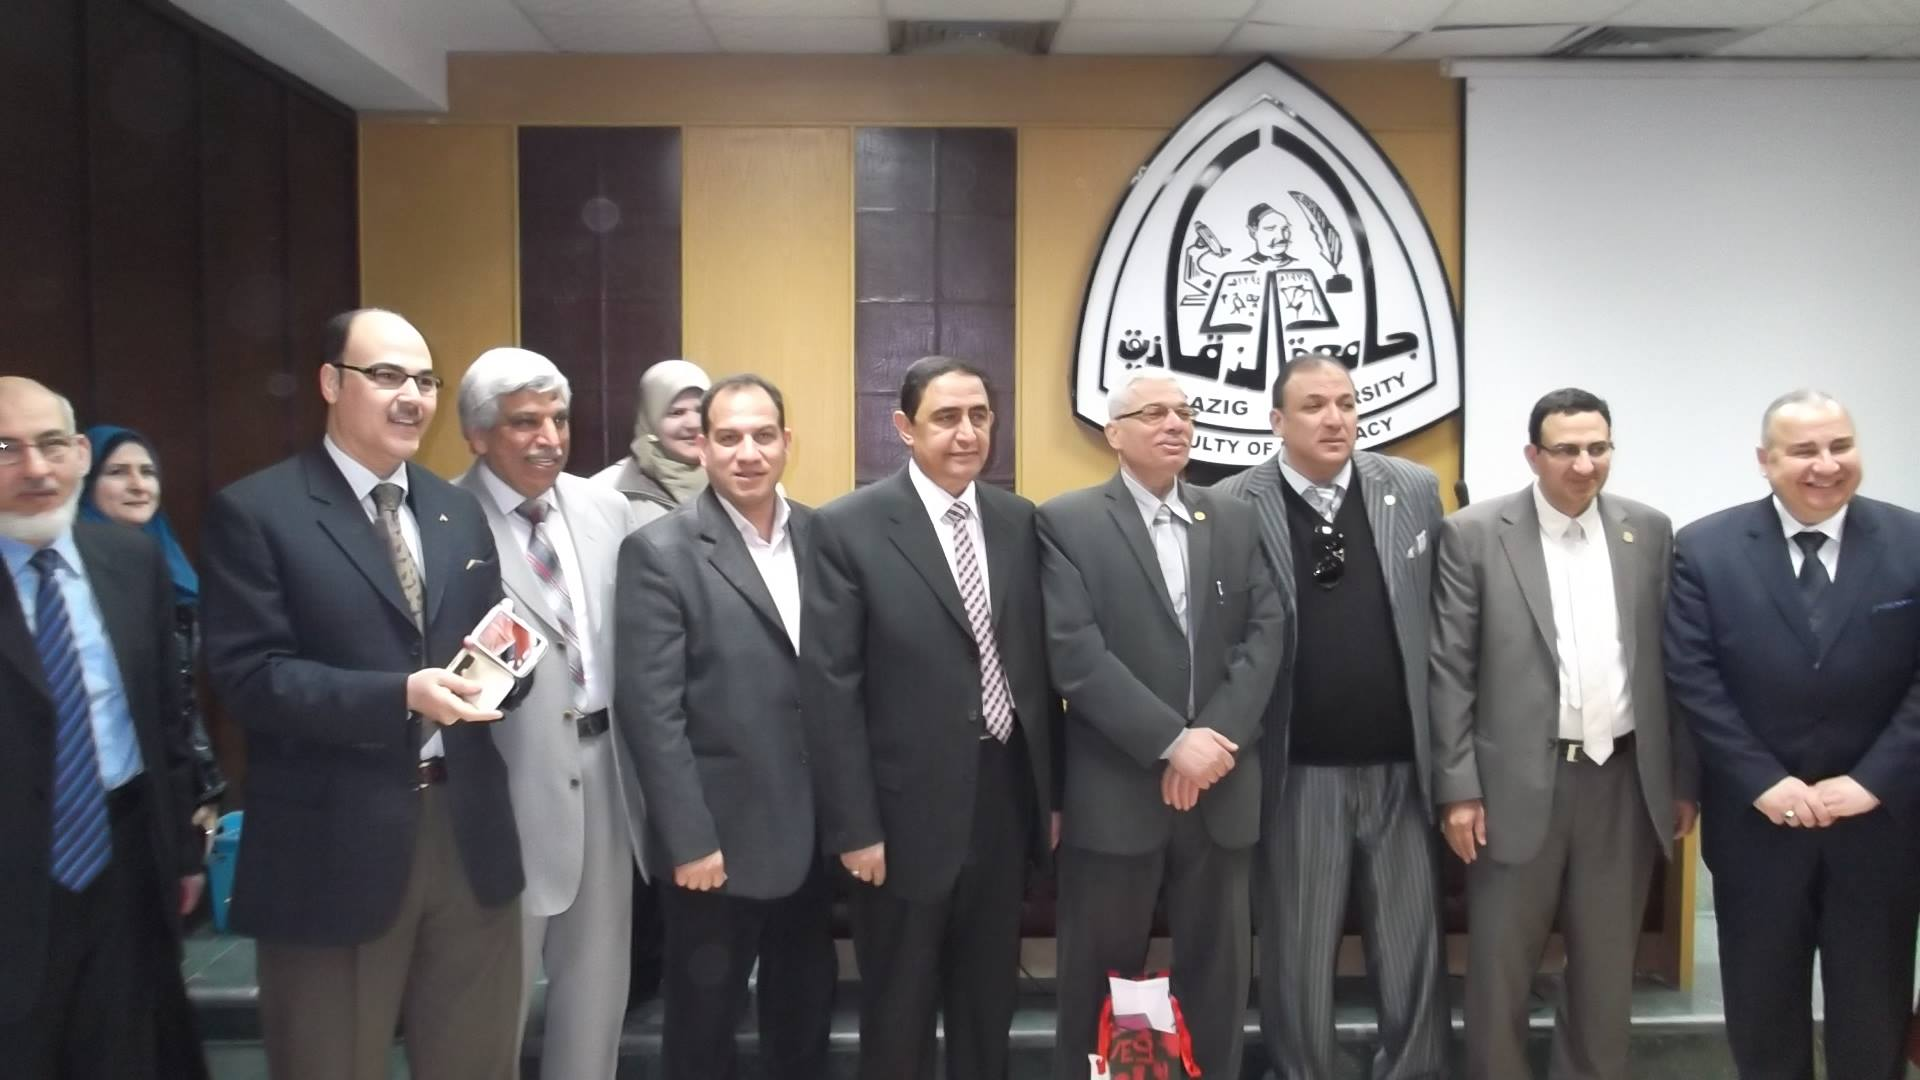 Celebration of the Faculty of Pharmacy to take over the D / Mohamed Mahmoud pond dean of the College of Pharmacy, Zagazig University, and in honor of D / Abdullah Shanawany former dean of the College